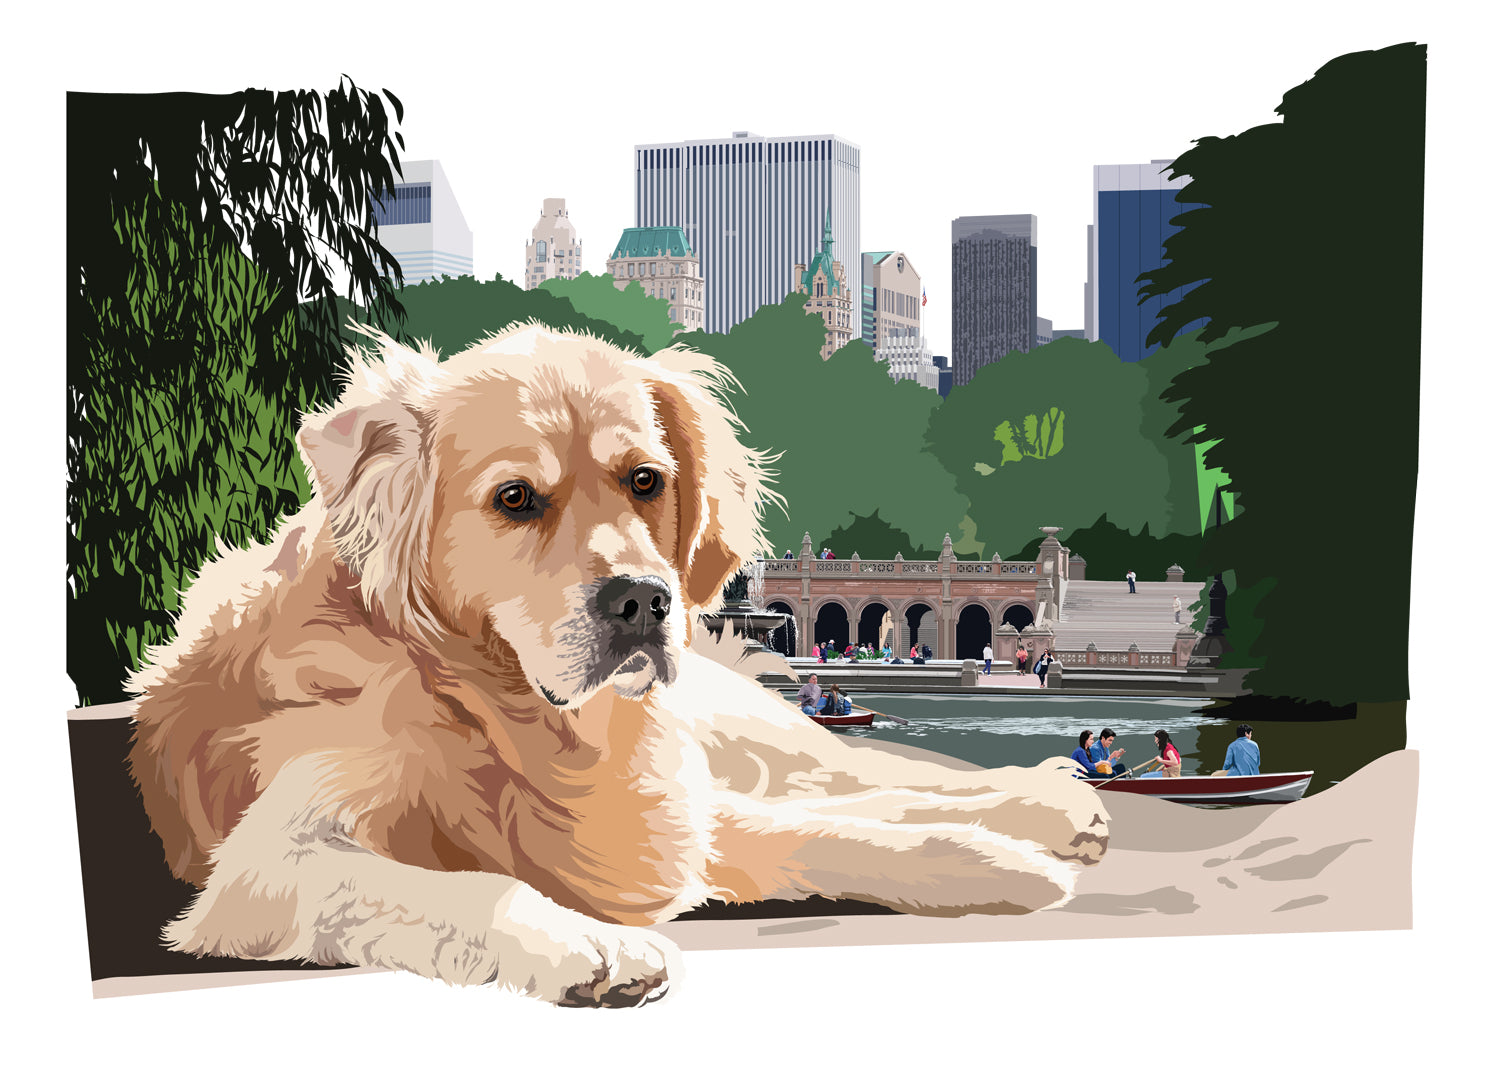 Retriever resting in Central Park, NY